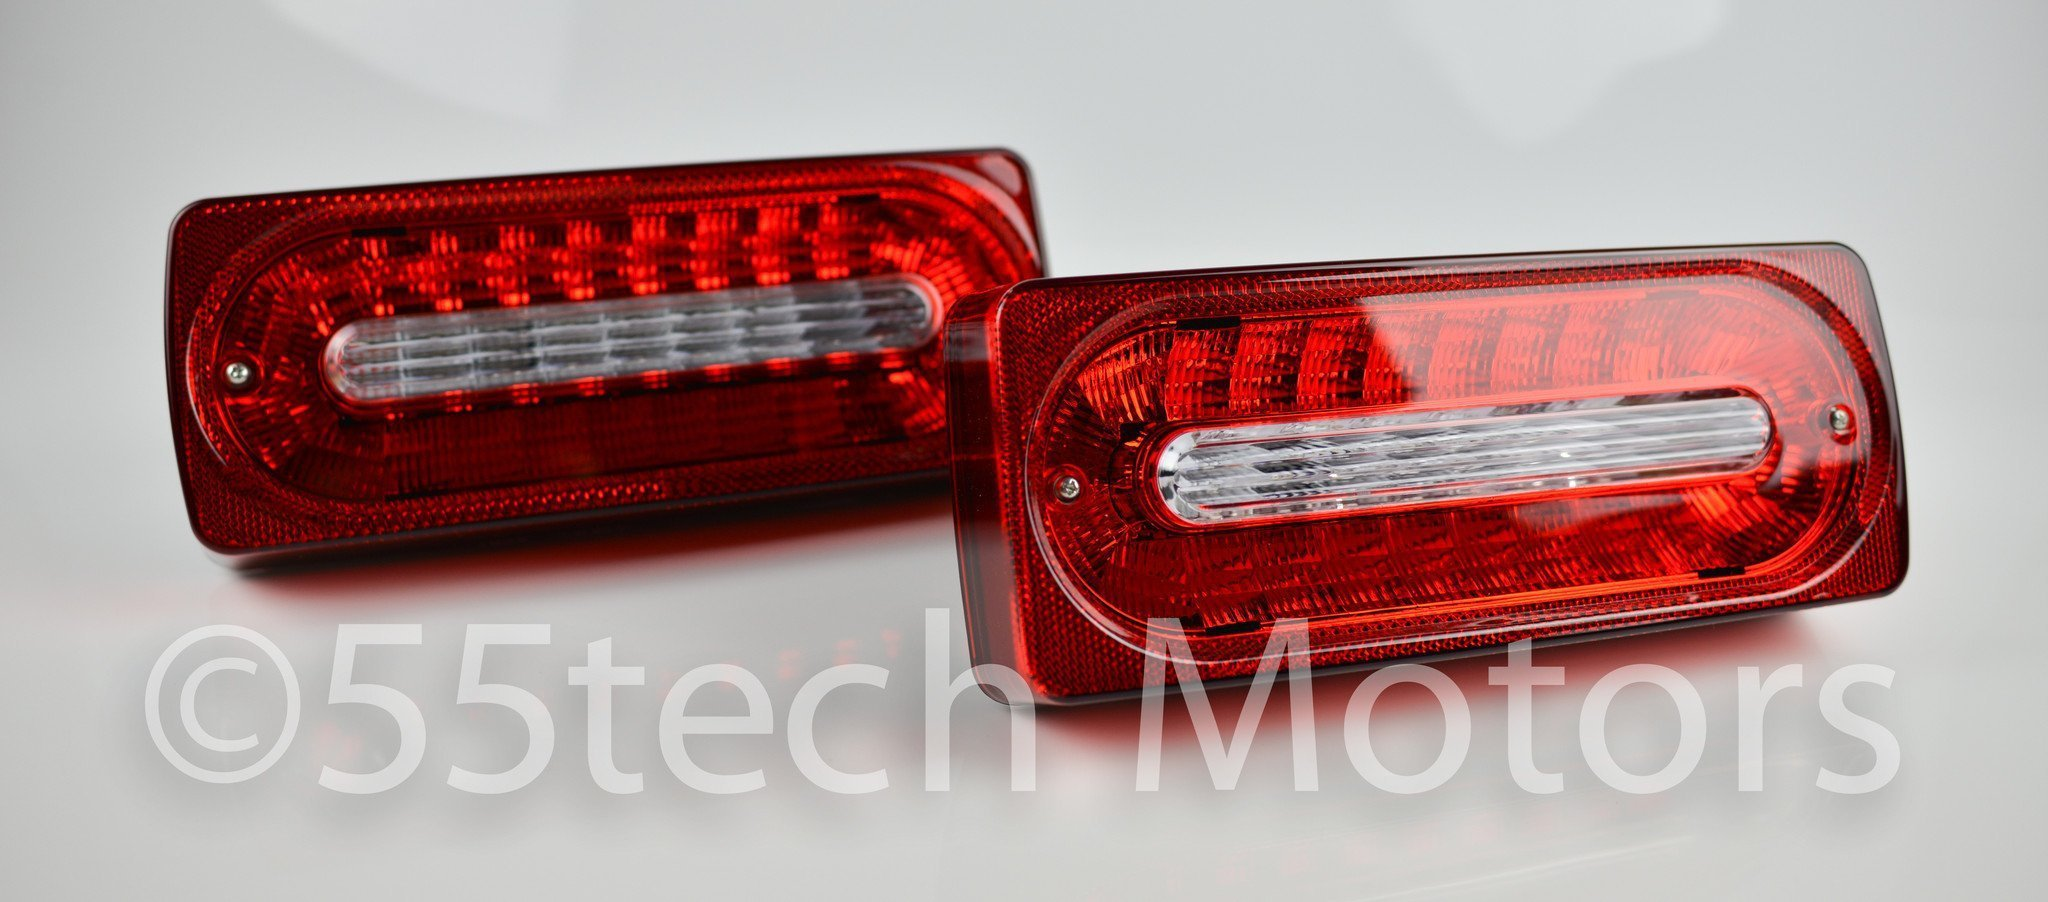 Mercedes W463 G Class LED Tail Light 1986~2016 G550 G500  G350 G63 G55 - 55tech Motors